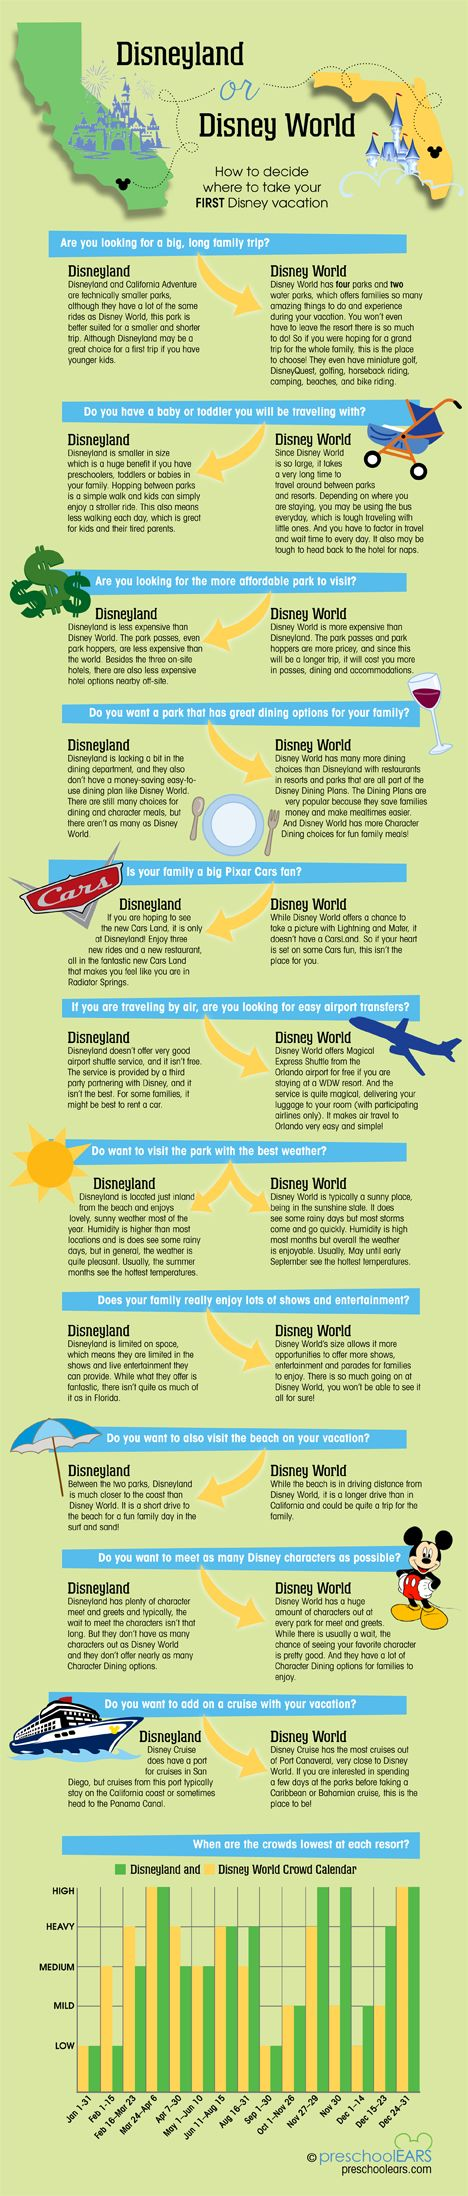 Disney Land (Paris, France) Or Disney World (Orlando, Florida) - How To Decide Where To Take Your First Disney Holiday